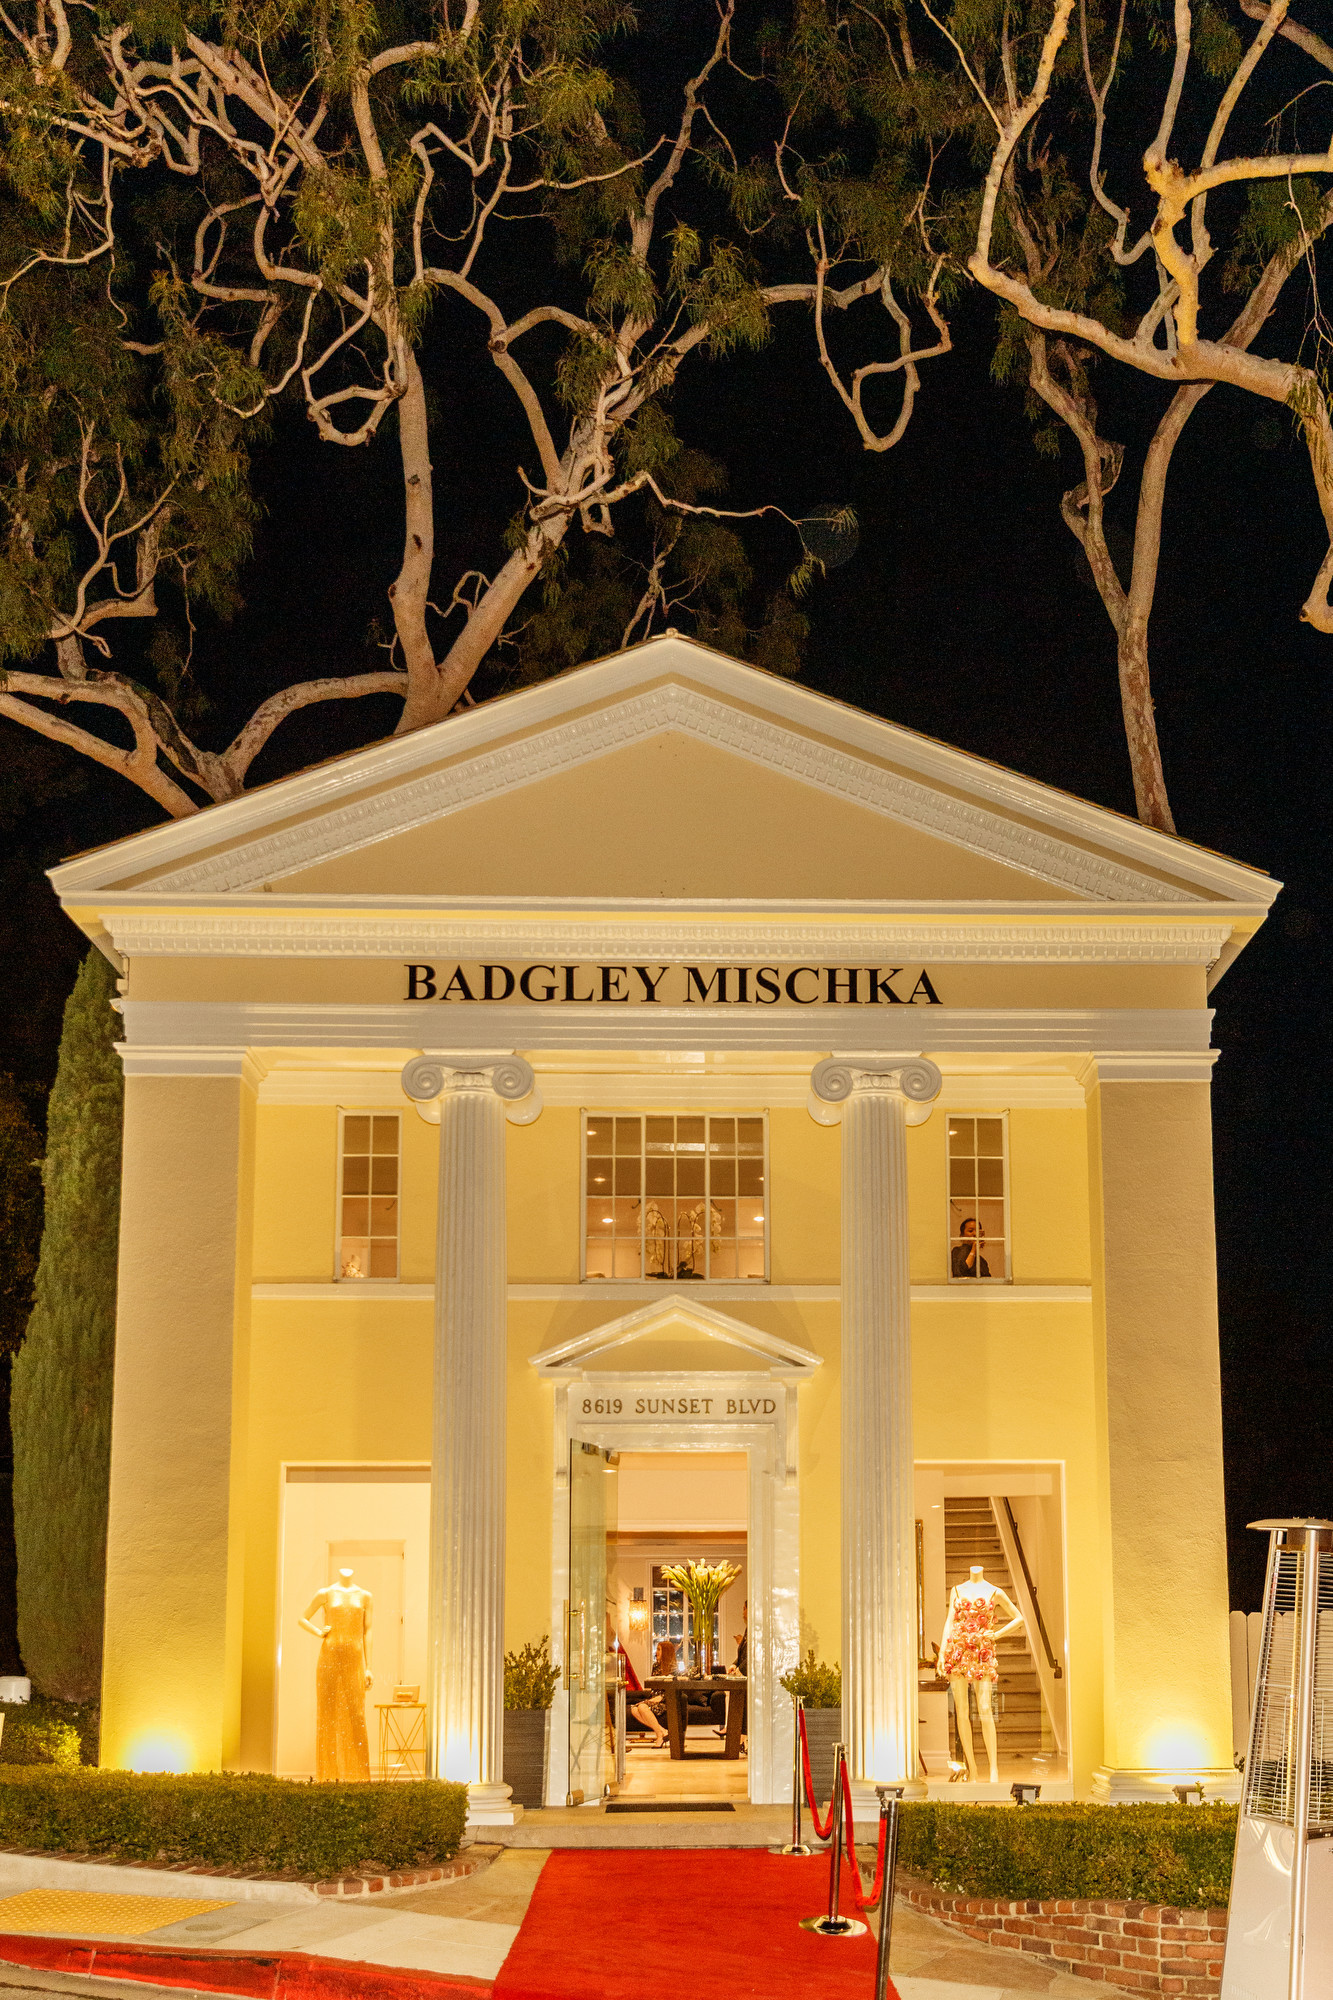 Badgley Mischka Hosts Opening Night Celebration At New Flagship Store